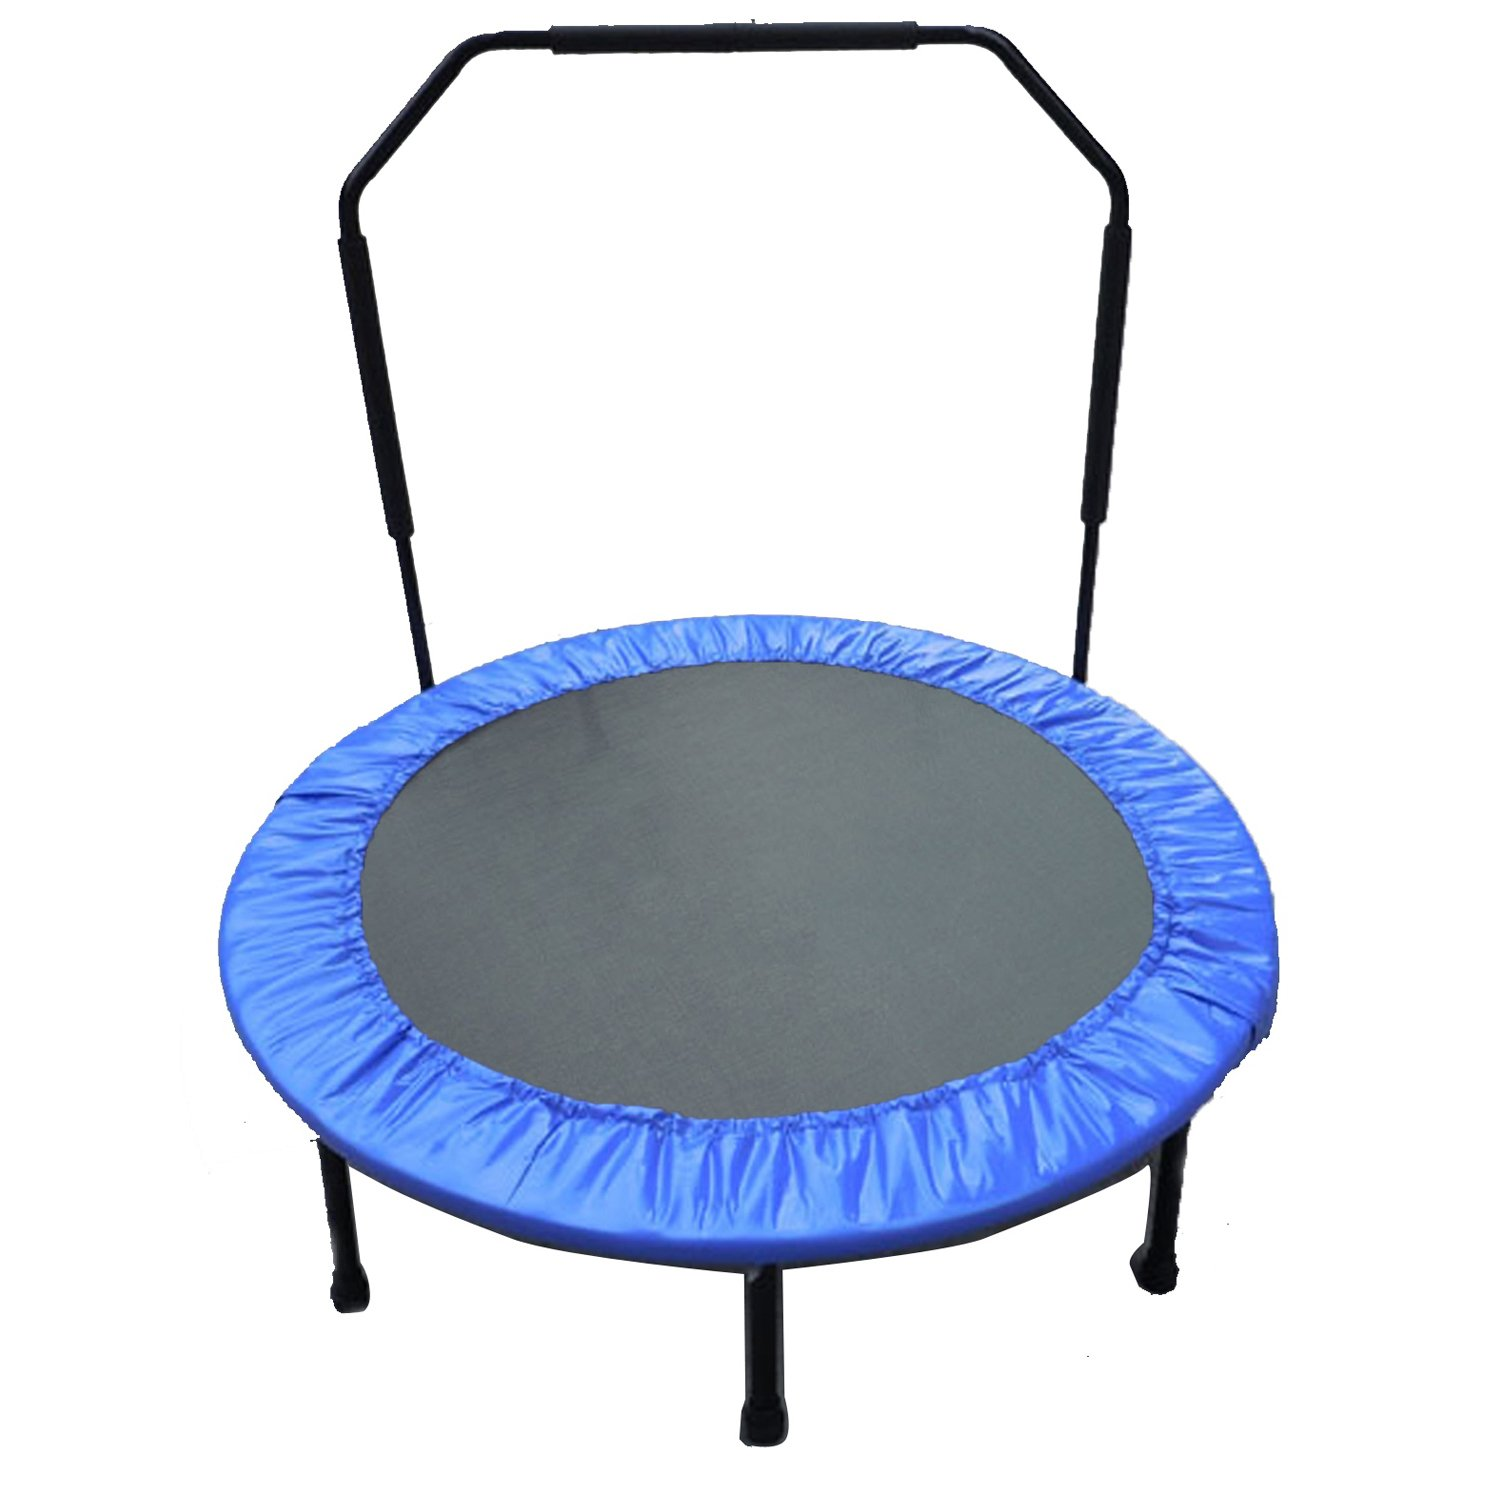 Upper Bounce 48'' Mini Home Indoor / Outdoor Fun, Health And Fitness Foldable Trampoline with handr